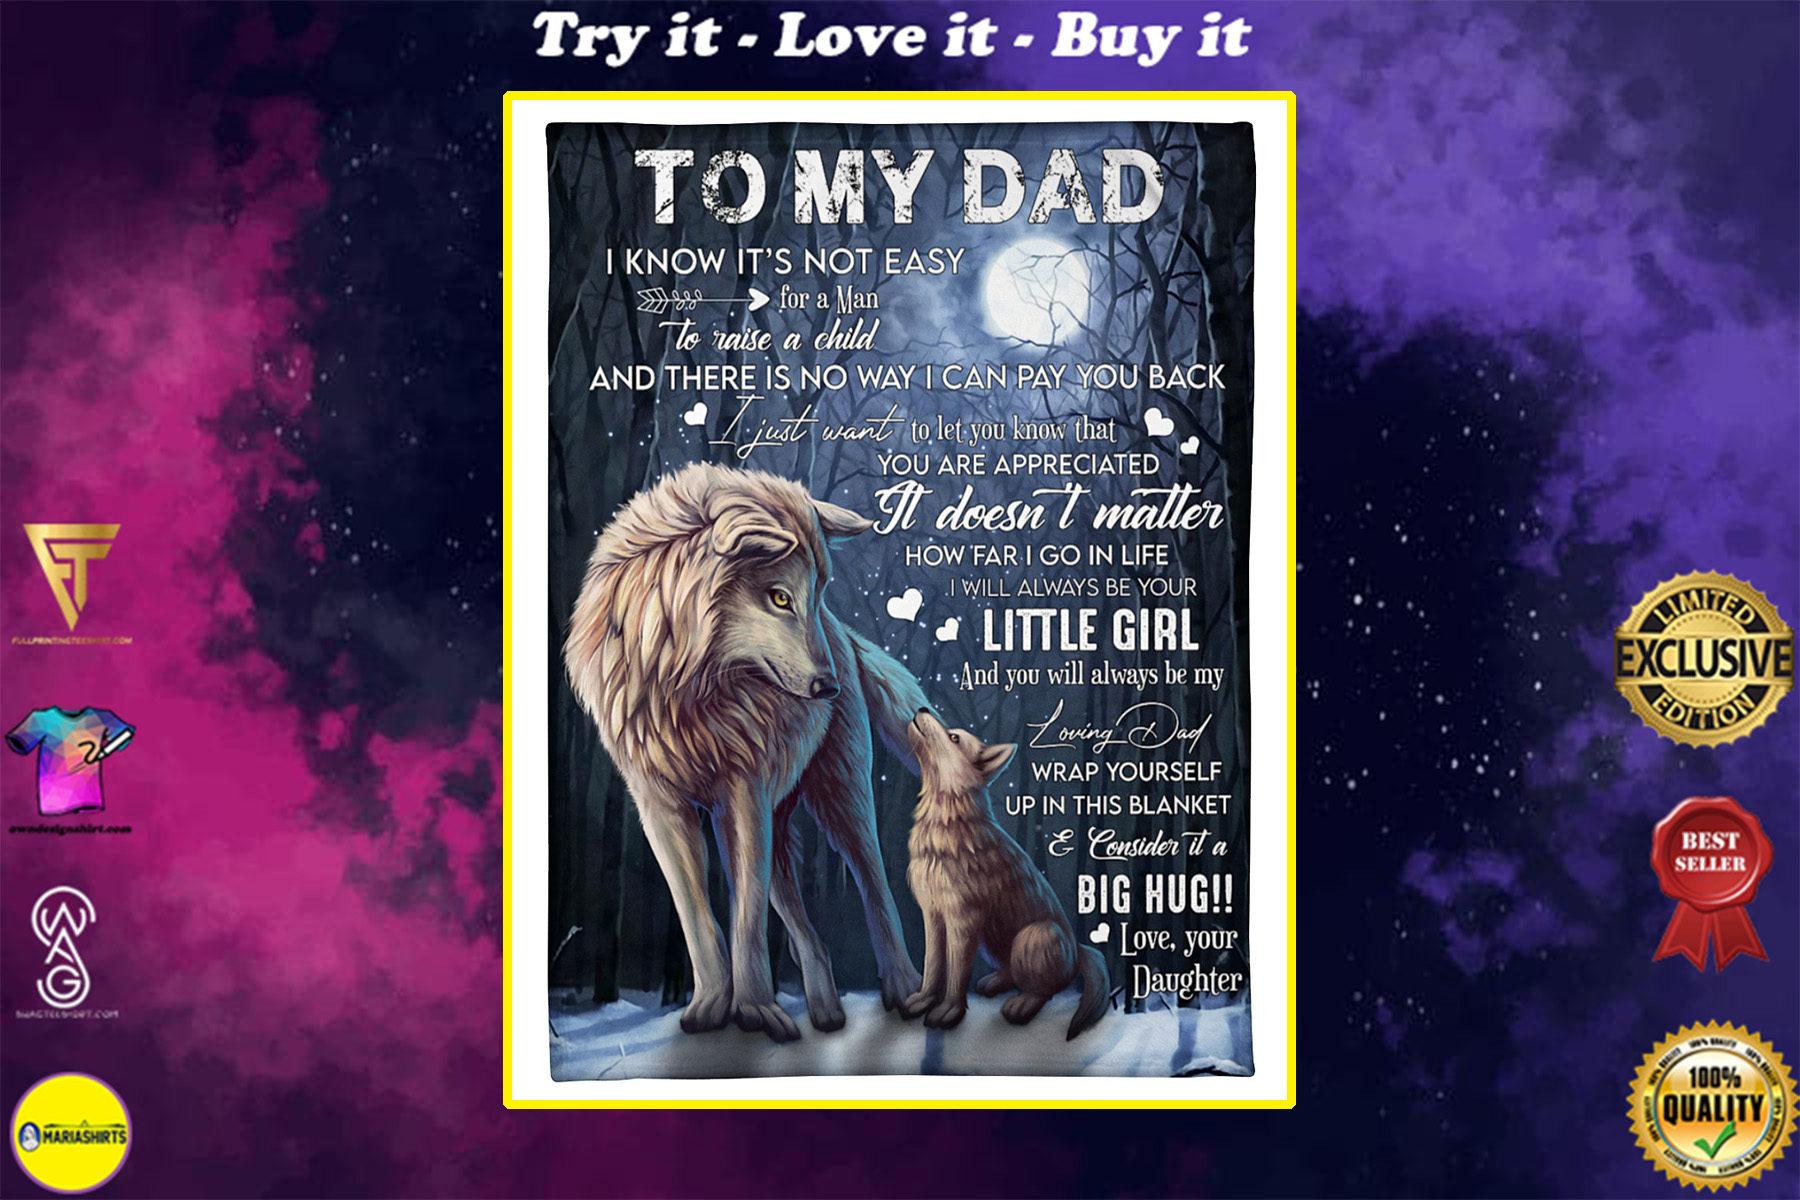 woft to my dad i know its not easy your daughter blanket